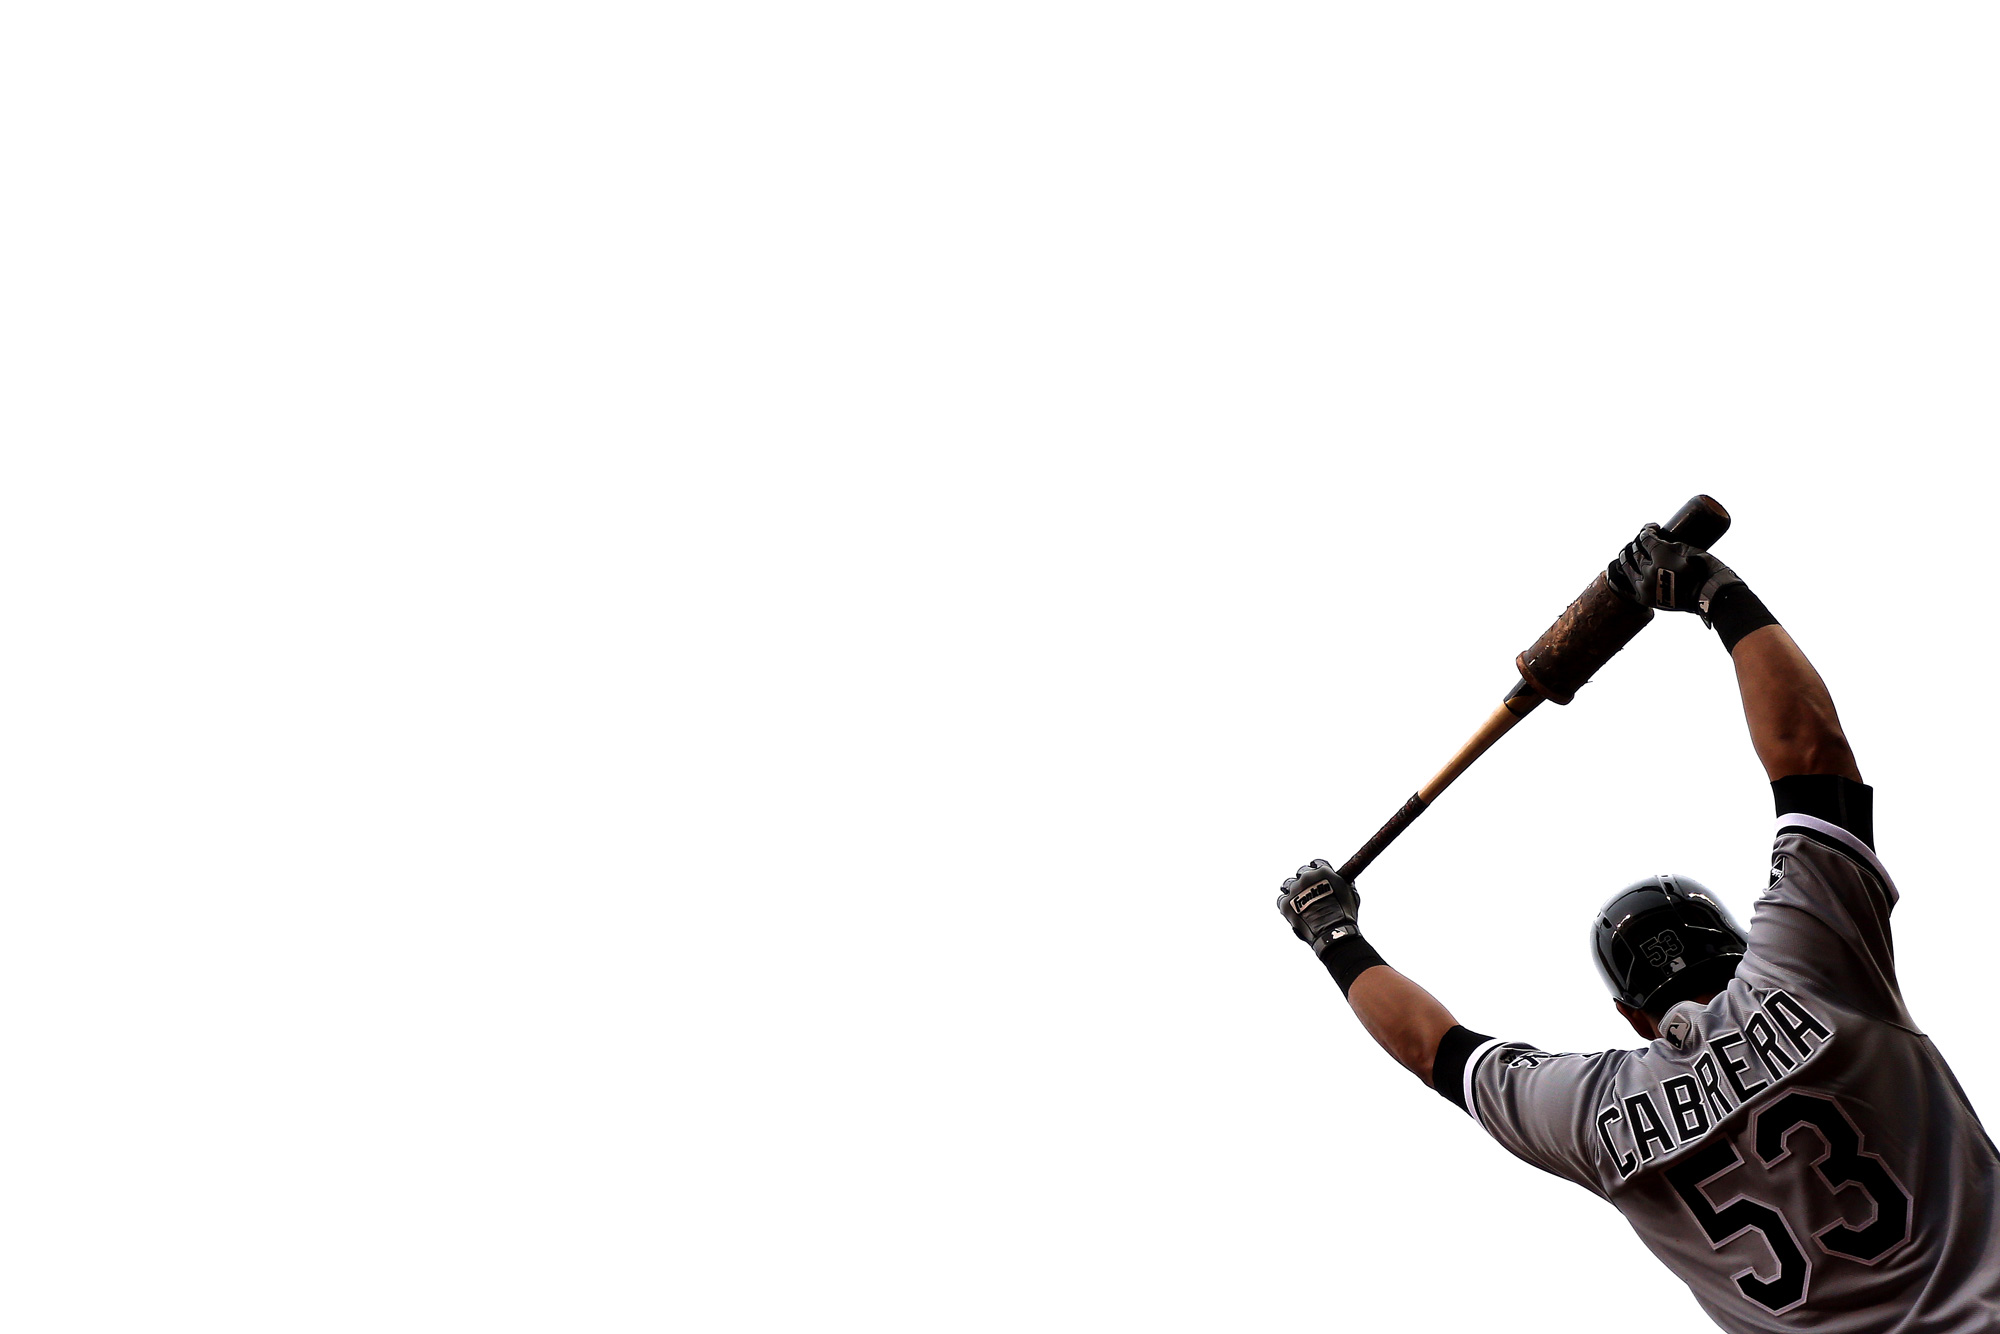 Melkey Cabrera #53 of the Chicago White Sox waits in the on deck circle during a game against the Baltimore Orioles at Oriole Park at Camden Yards on May 1, 2016 in Baltimore, Maryland.